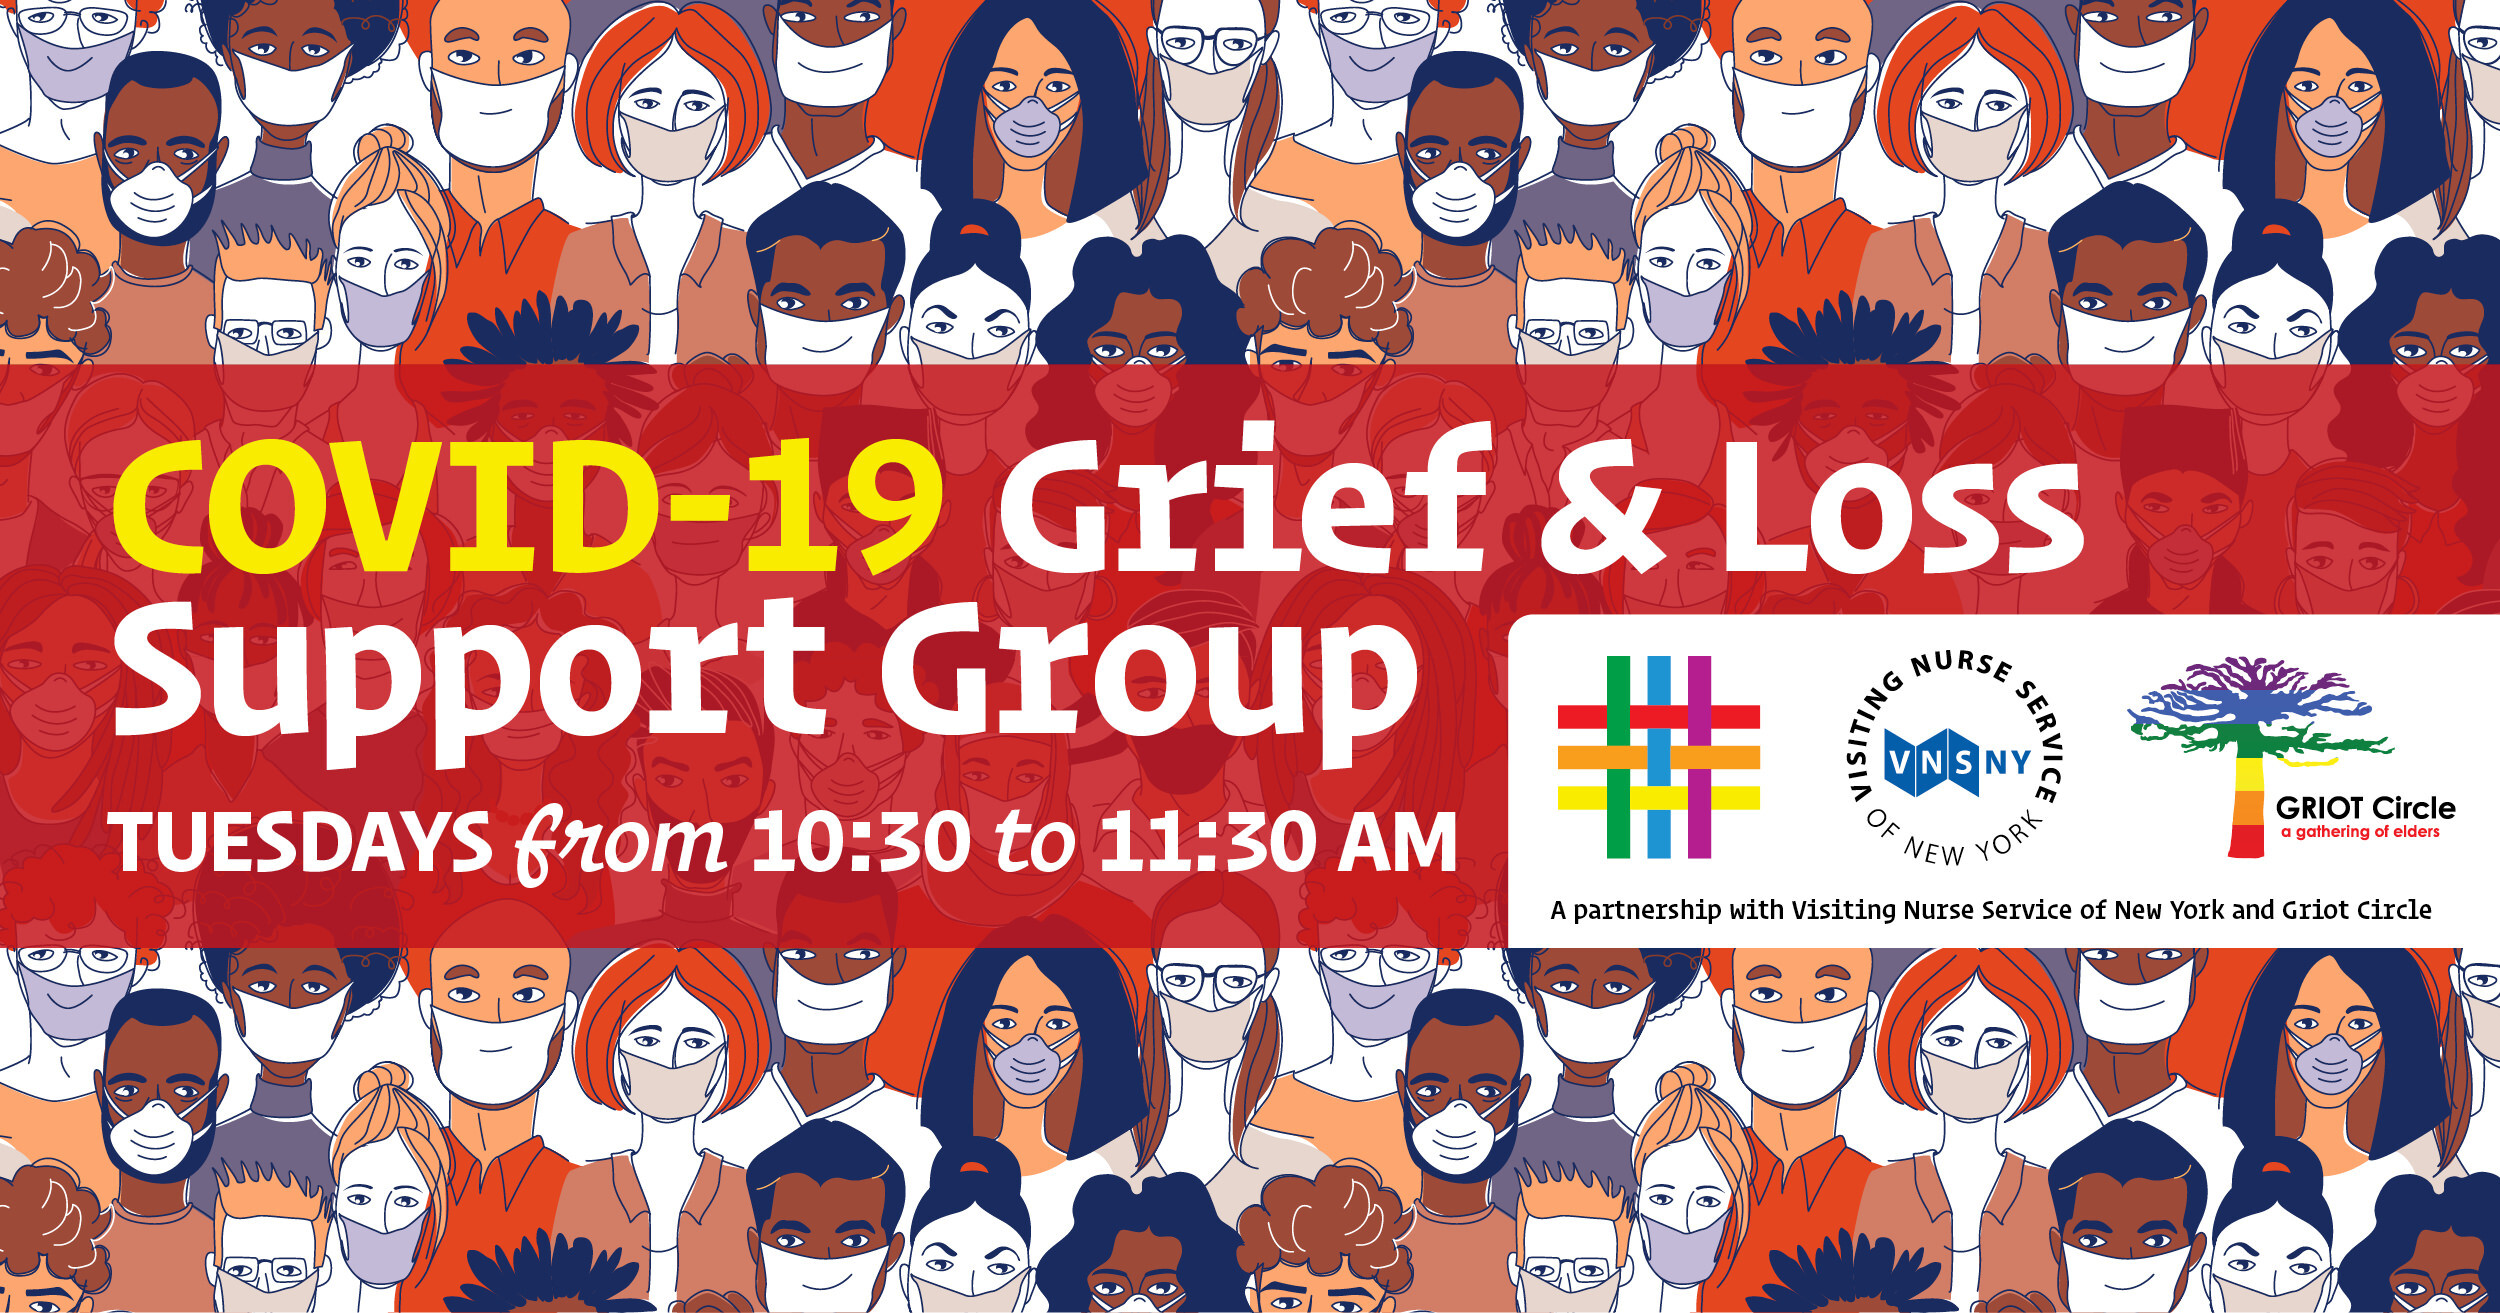 COVID-19 Grief & Loss Tuesday Support Group